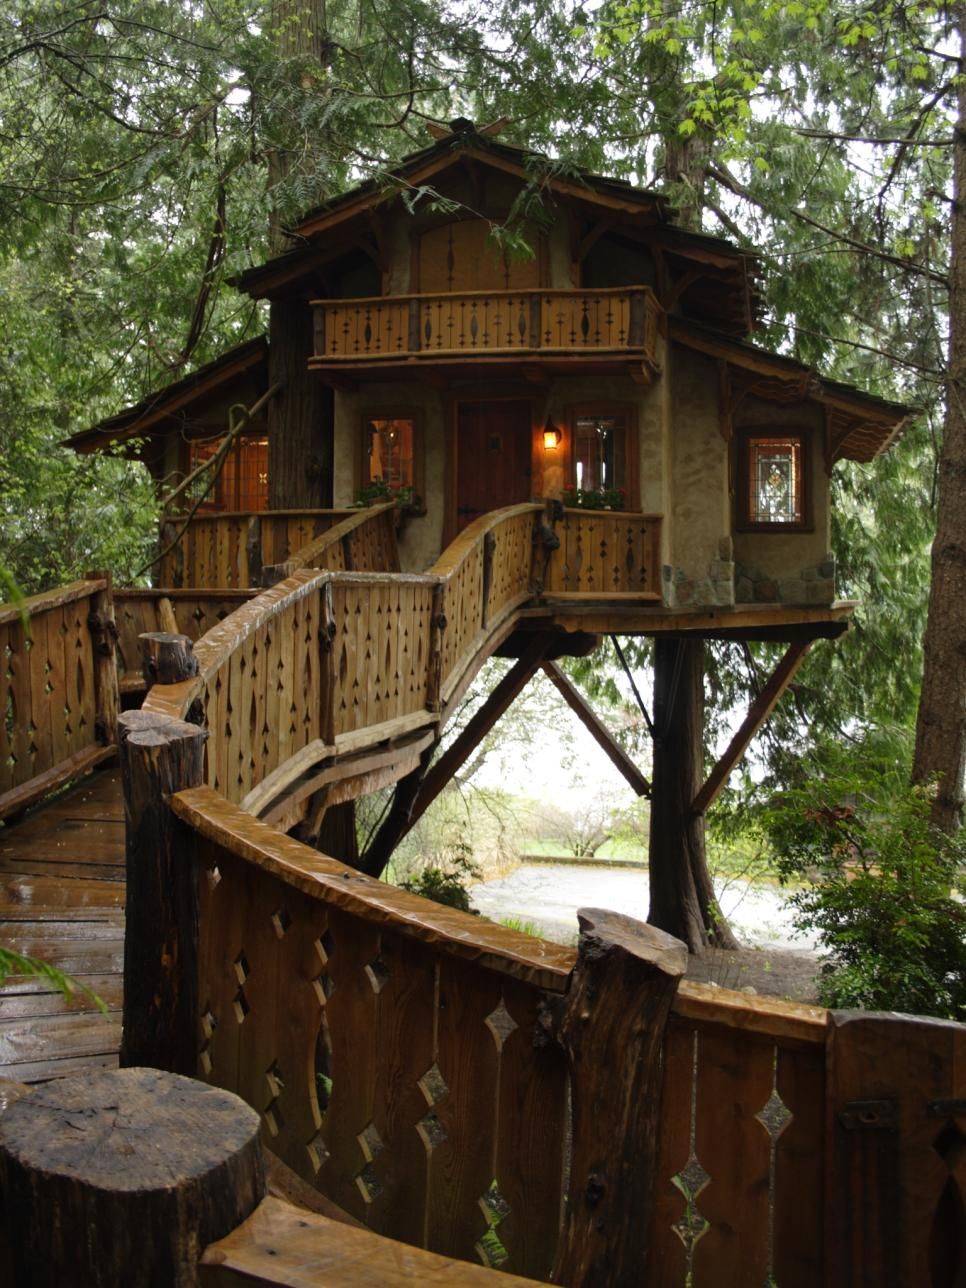 Get Ideas And Stories Behind Fabulous Treehouse Designs From The Experts Who Built Them